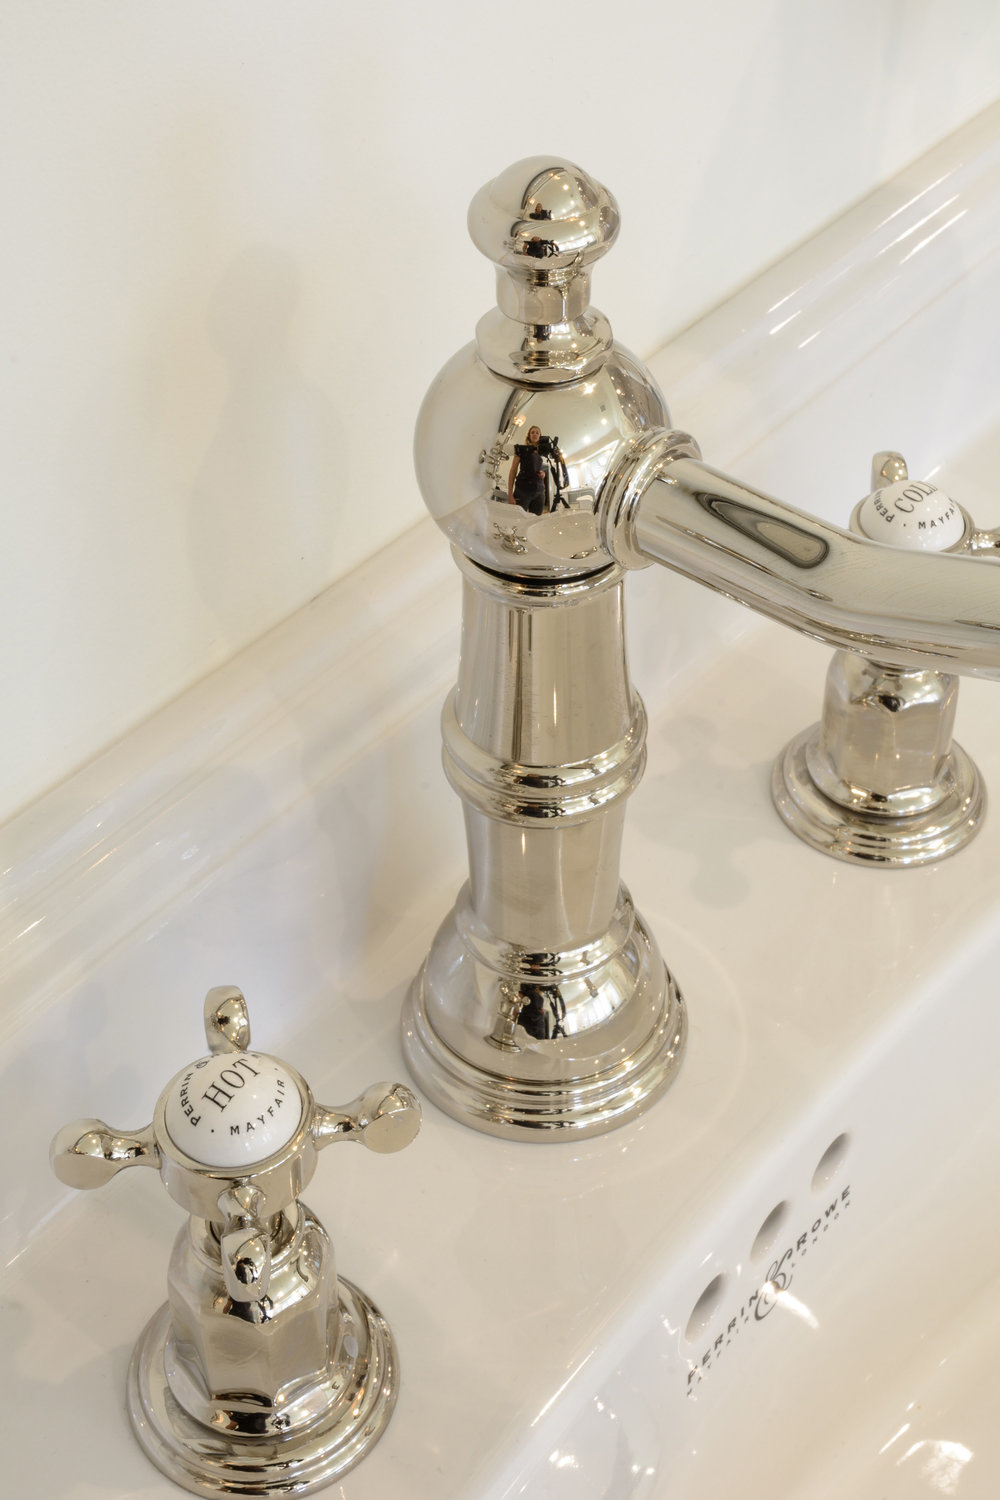 Victorian-Masterpiece-Polished-Nickel-Faucet-Detail.jpg